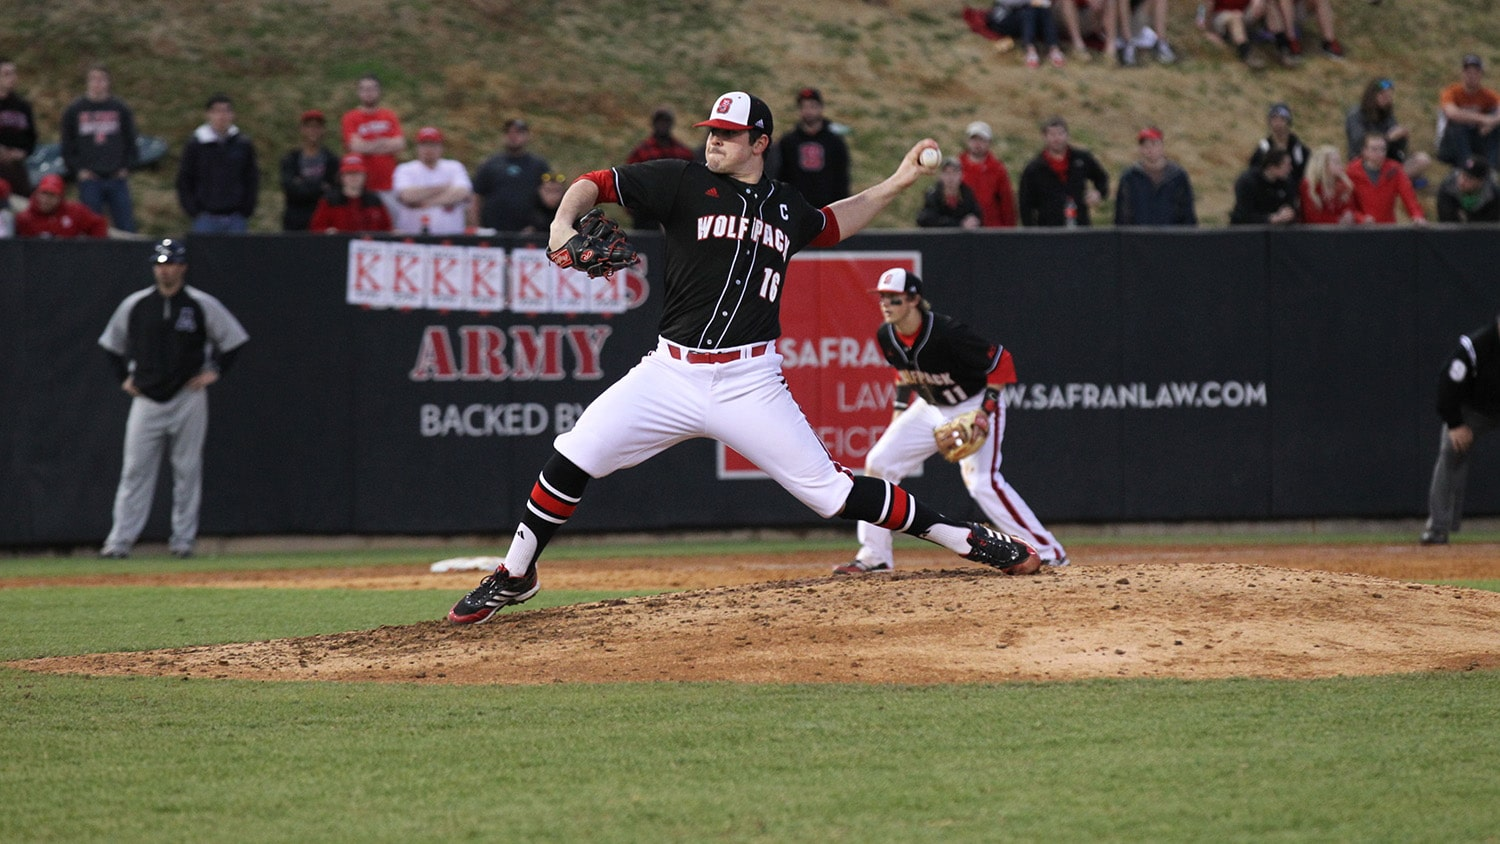 Rodon throws a pitch at a Wolfpack baseball game.